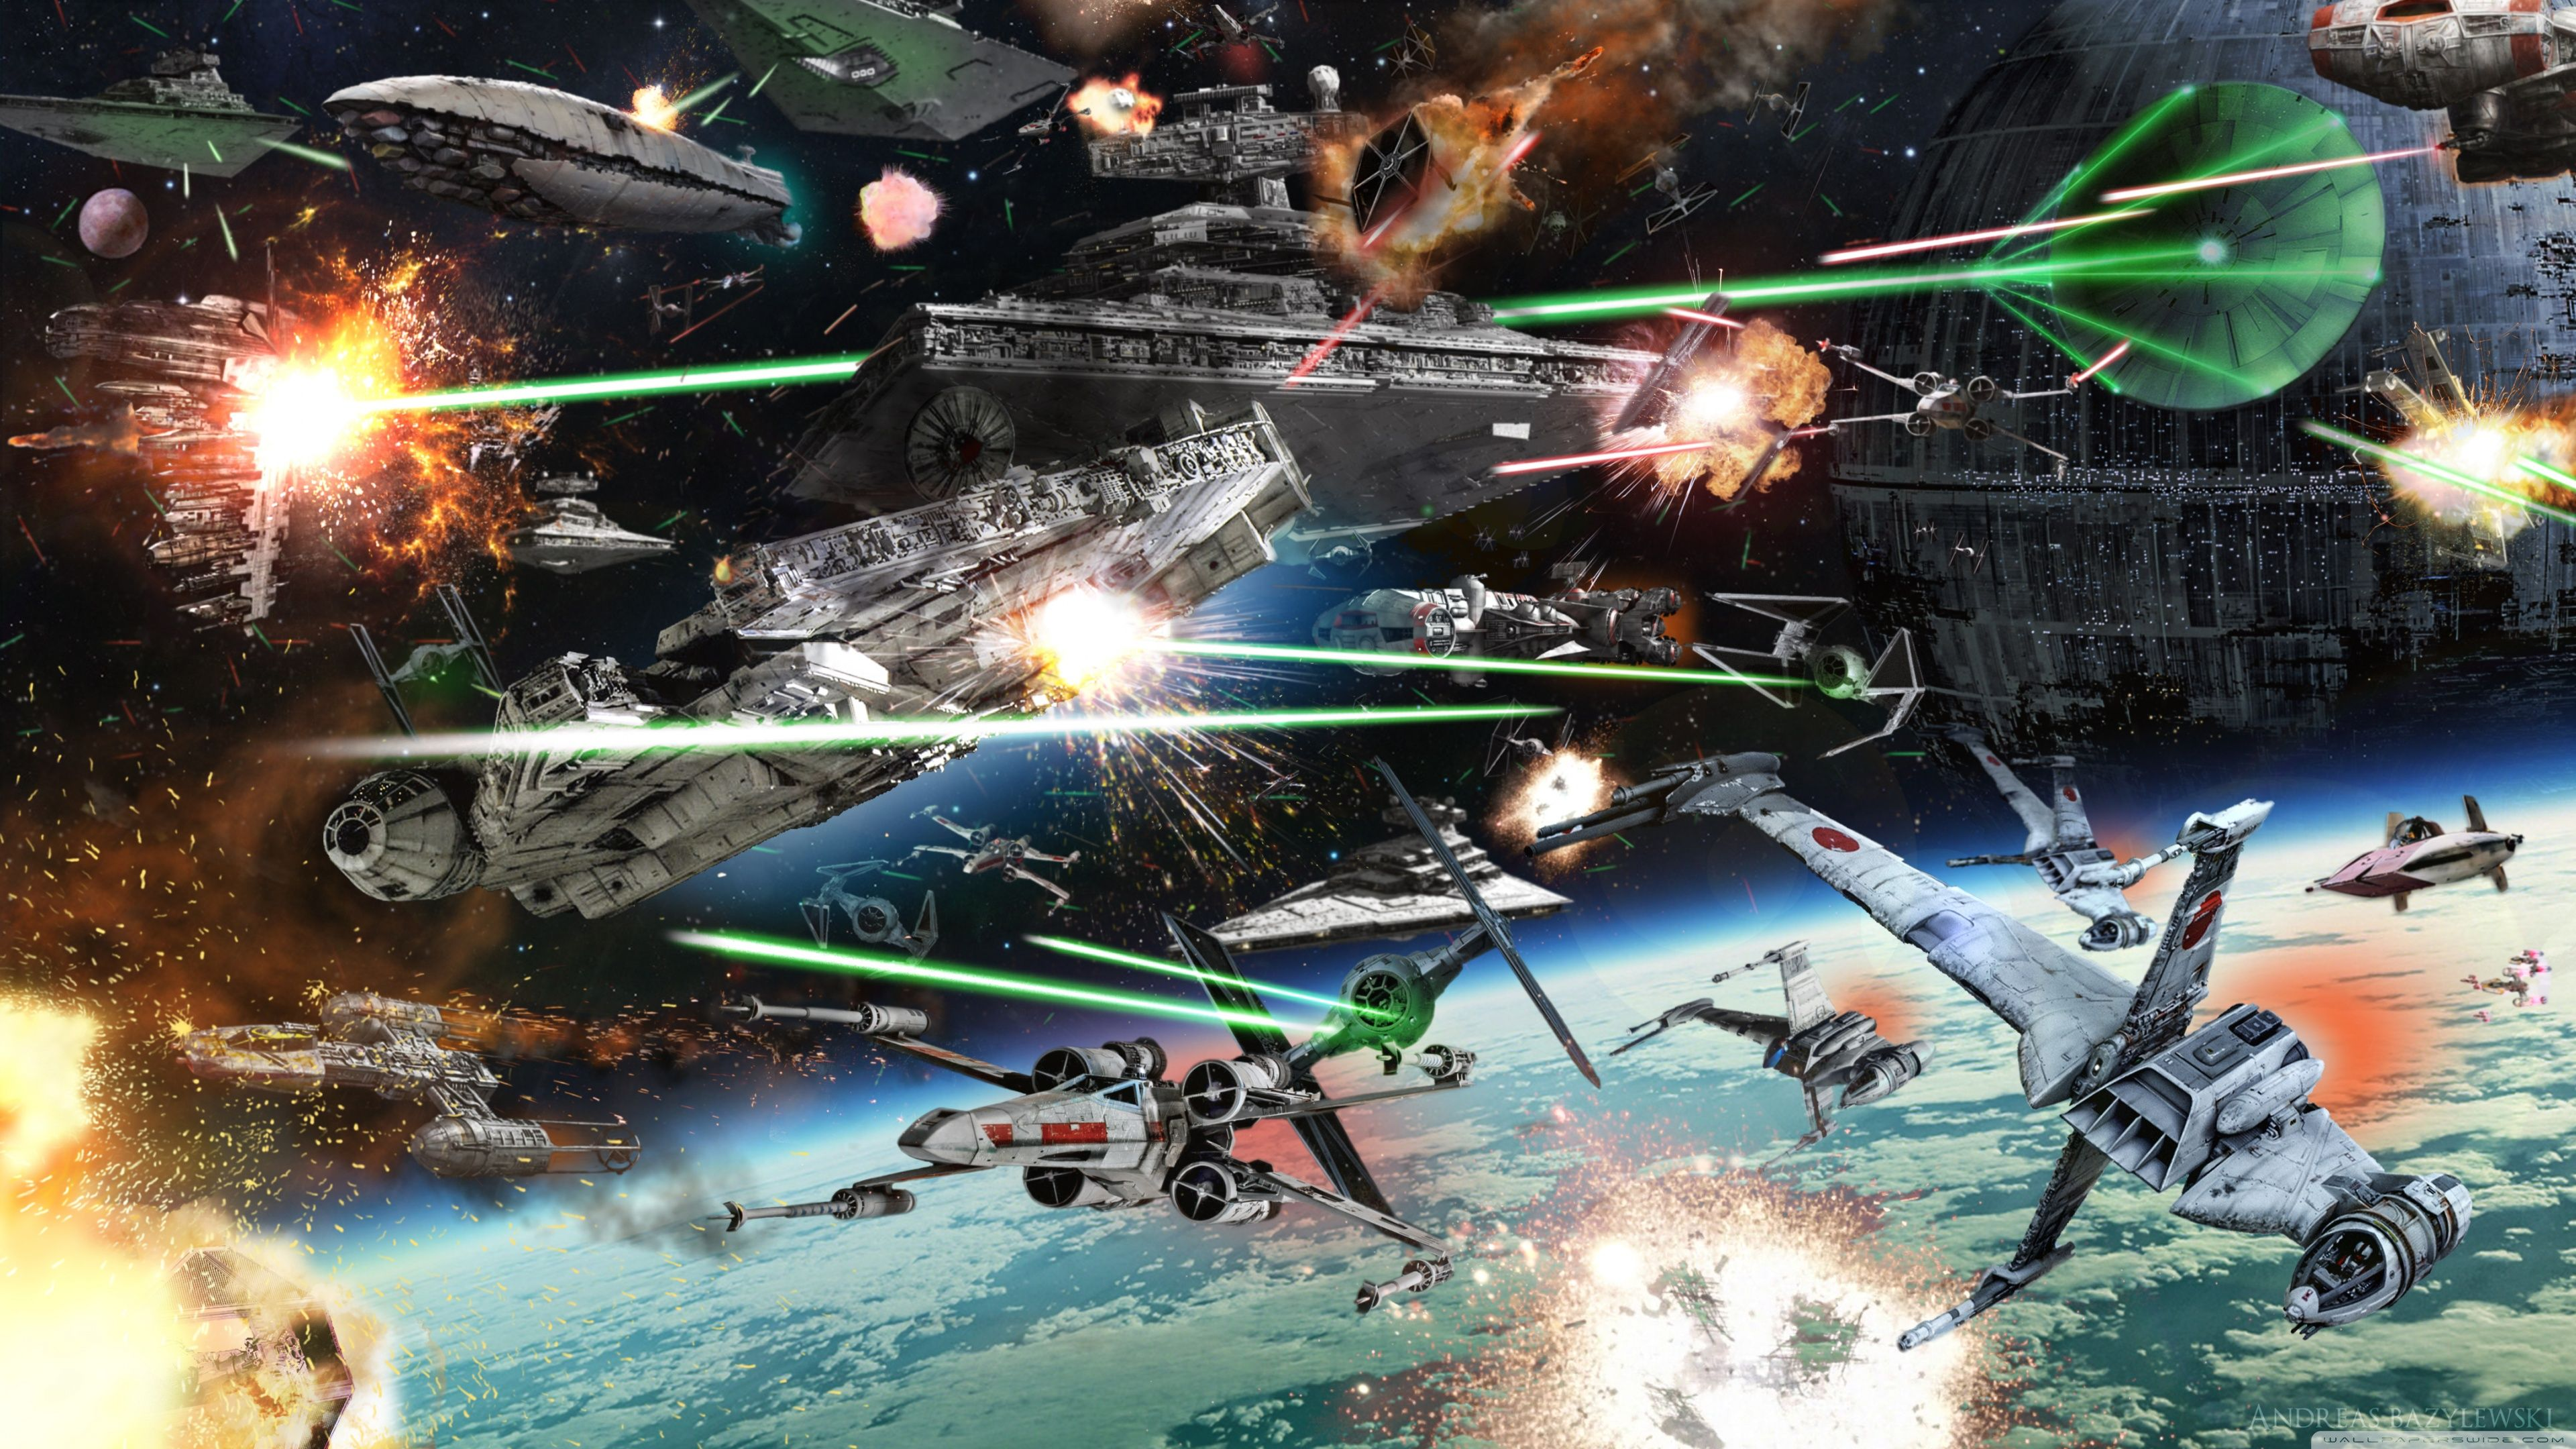 Star Wars Battle Wallpapers Top Free Star Wars Battle Backgrounds Wallpaperaccess